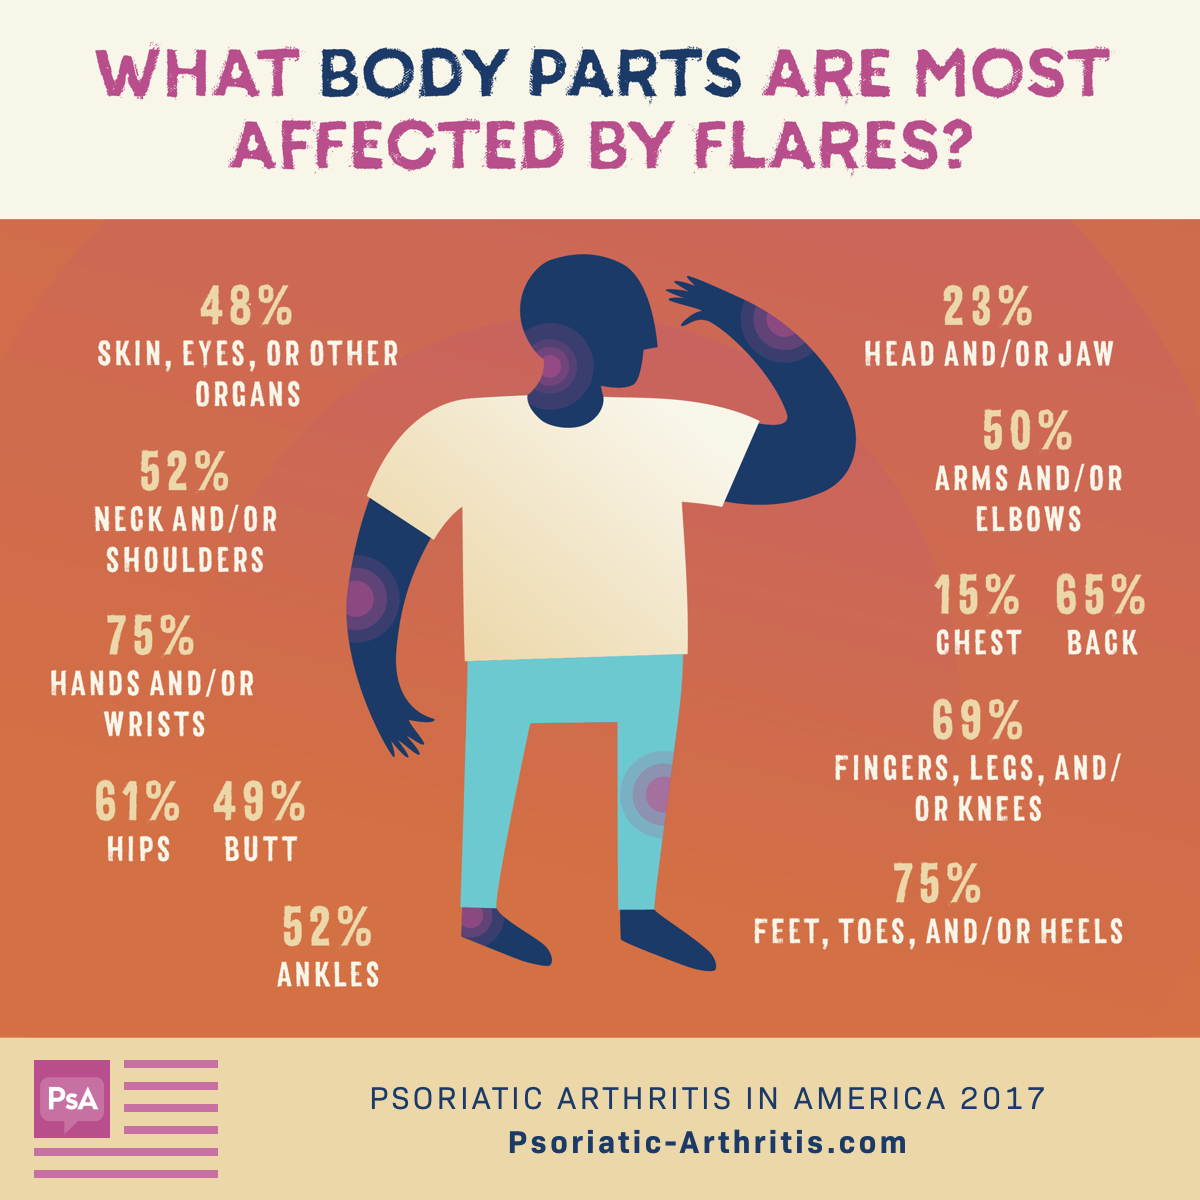 Body Parts Affected by Flares